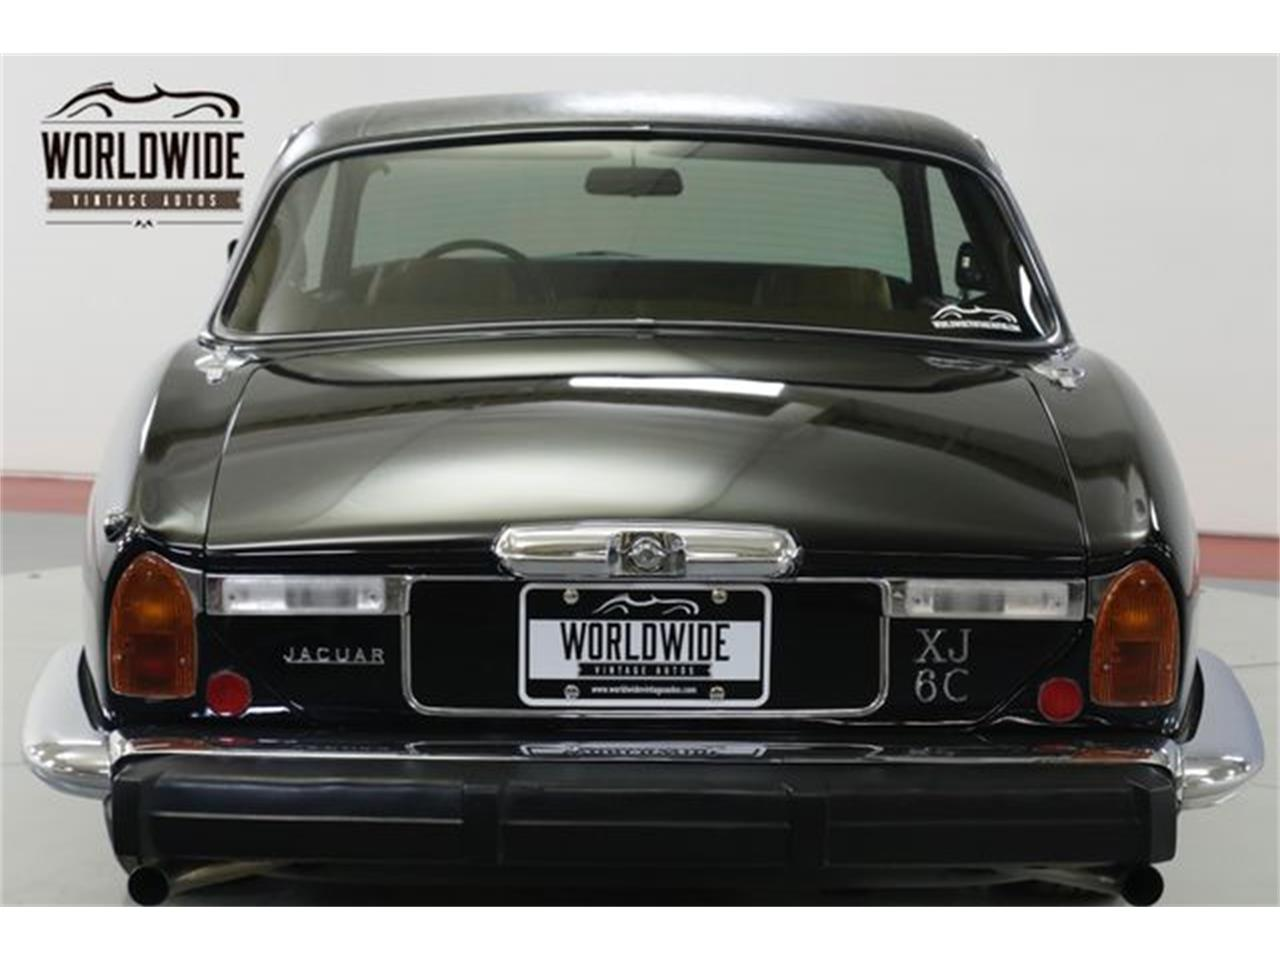 Large Picture of 1976 Jaguar XJ6 located in Colorado - $28,900.00 Offered by Worldwide Vintage Autos - PSG5